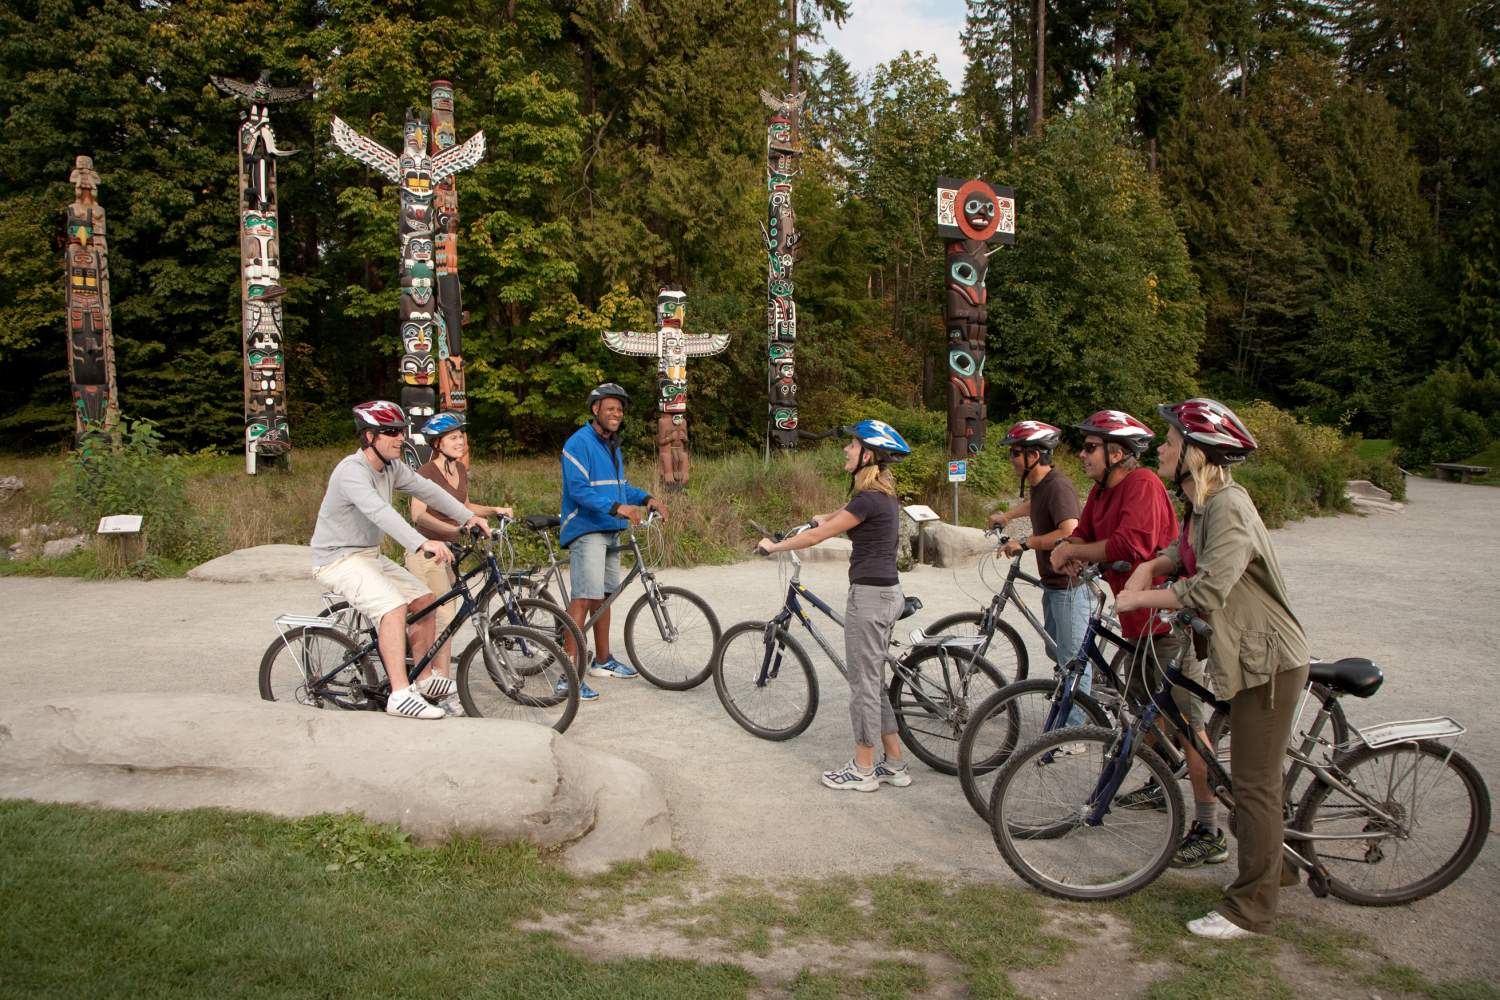 Cyclists in Stanley Park, Vancouver